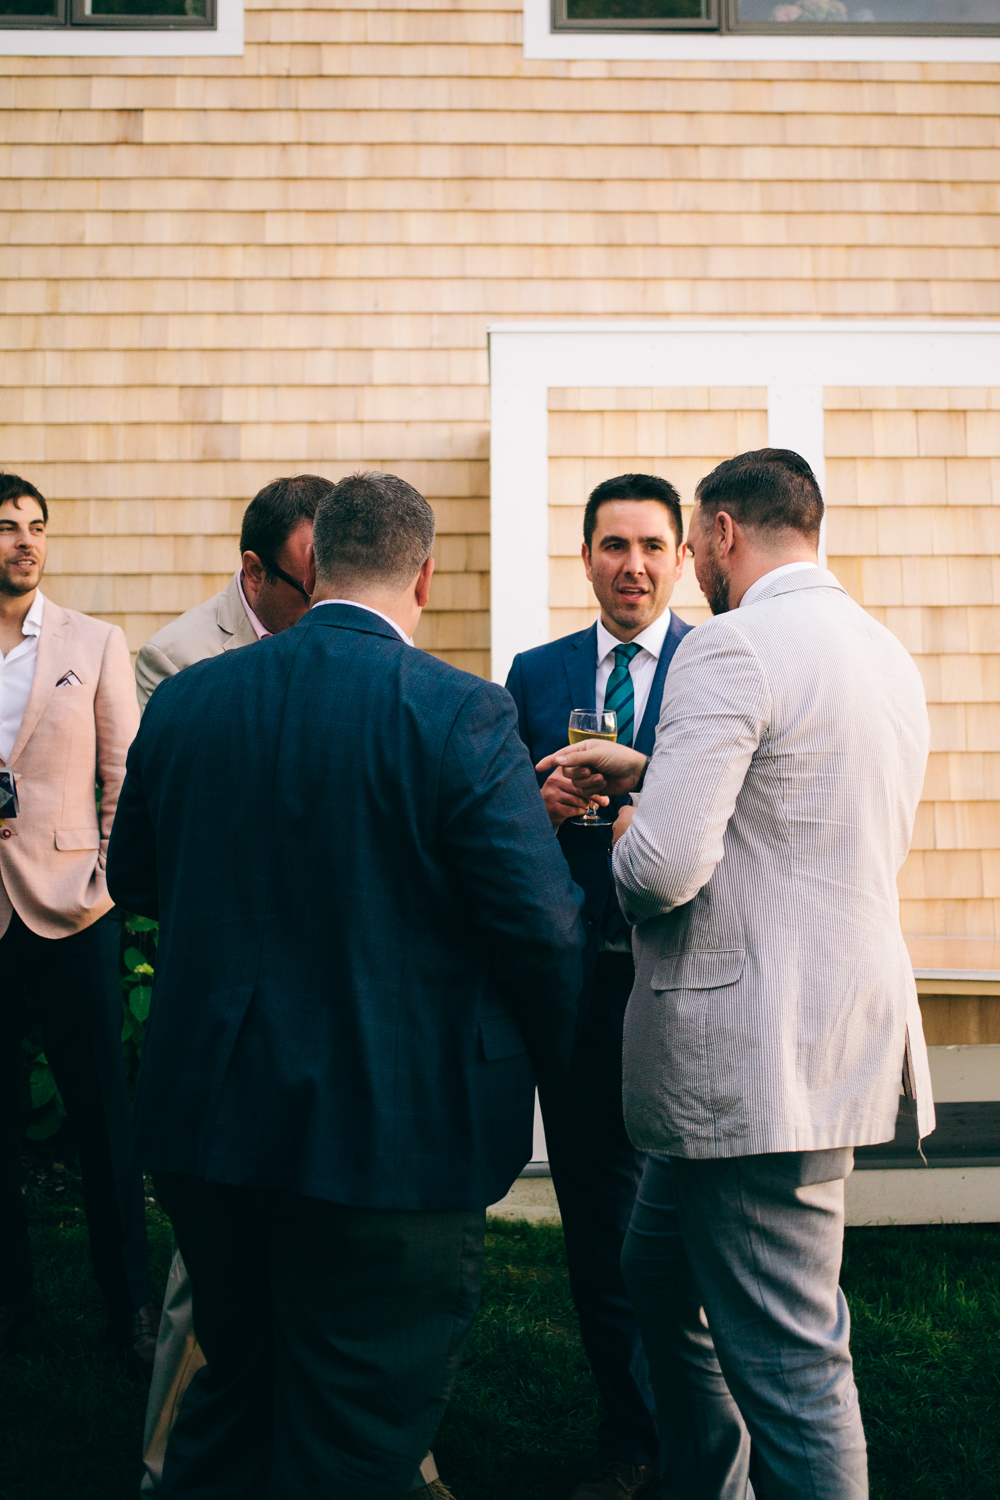 Jess & Rob Falmouth Wedding by Dagny Kream Photography-76.jpg